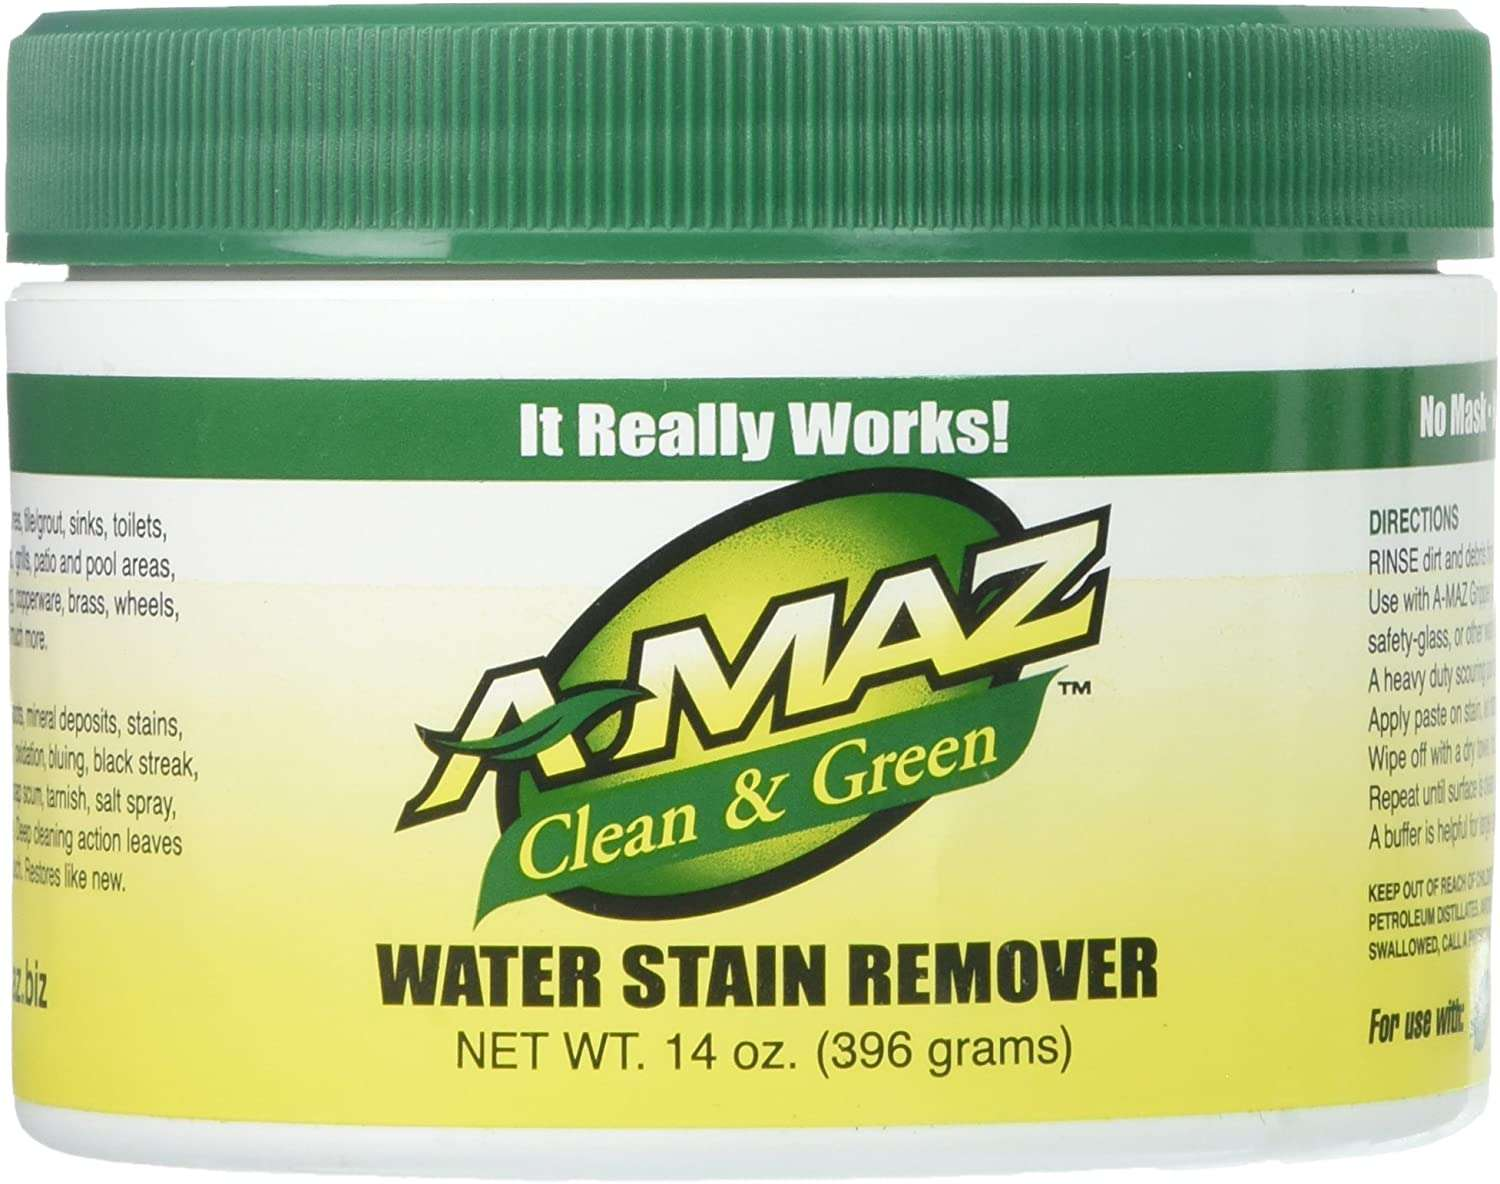 : A-MAZ Clean & Green Water Stain Remover